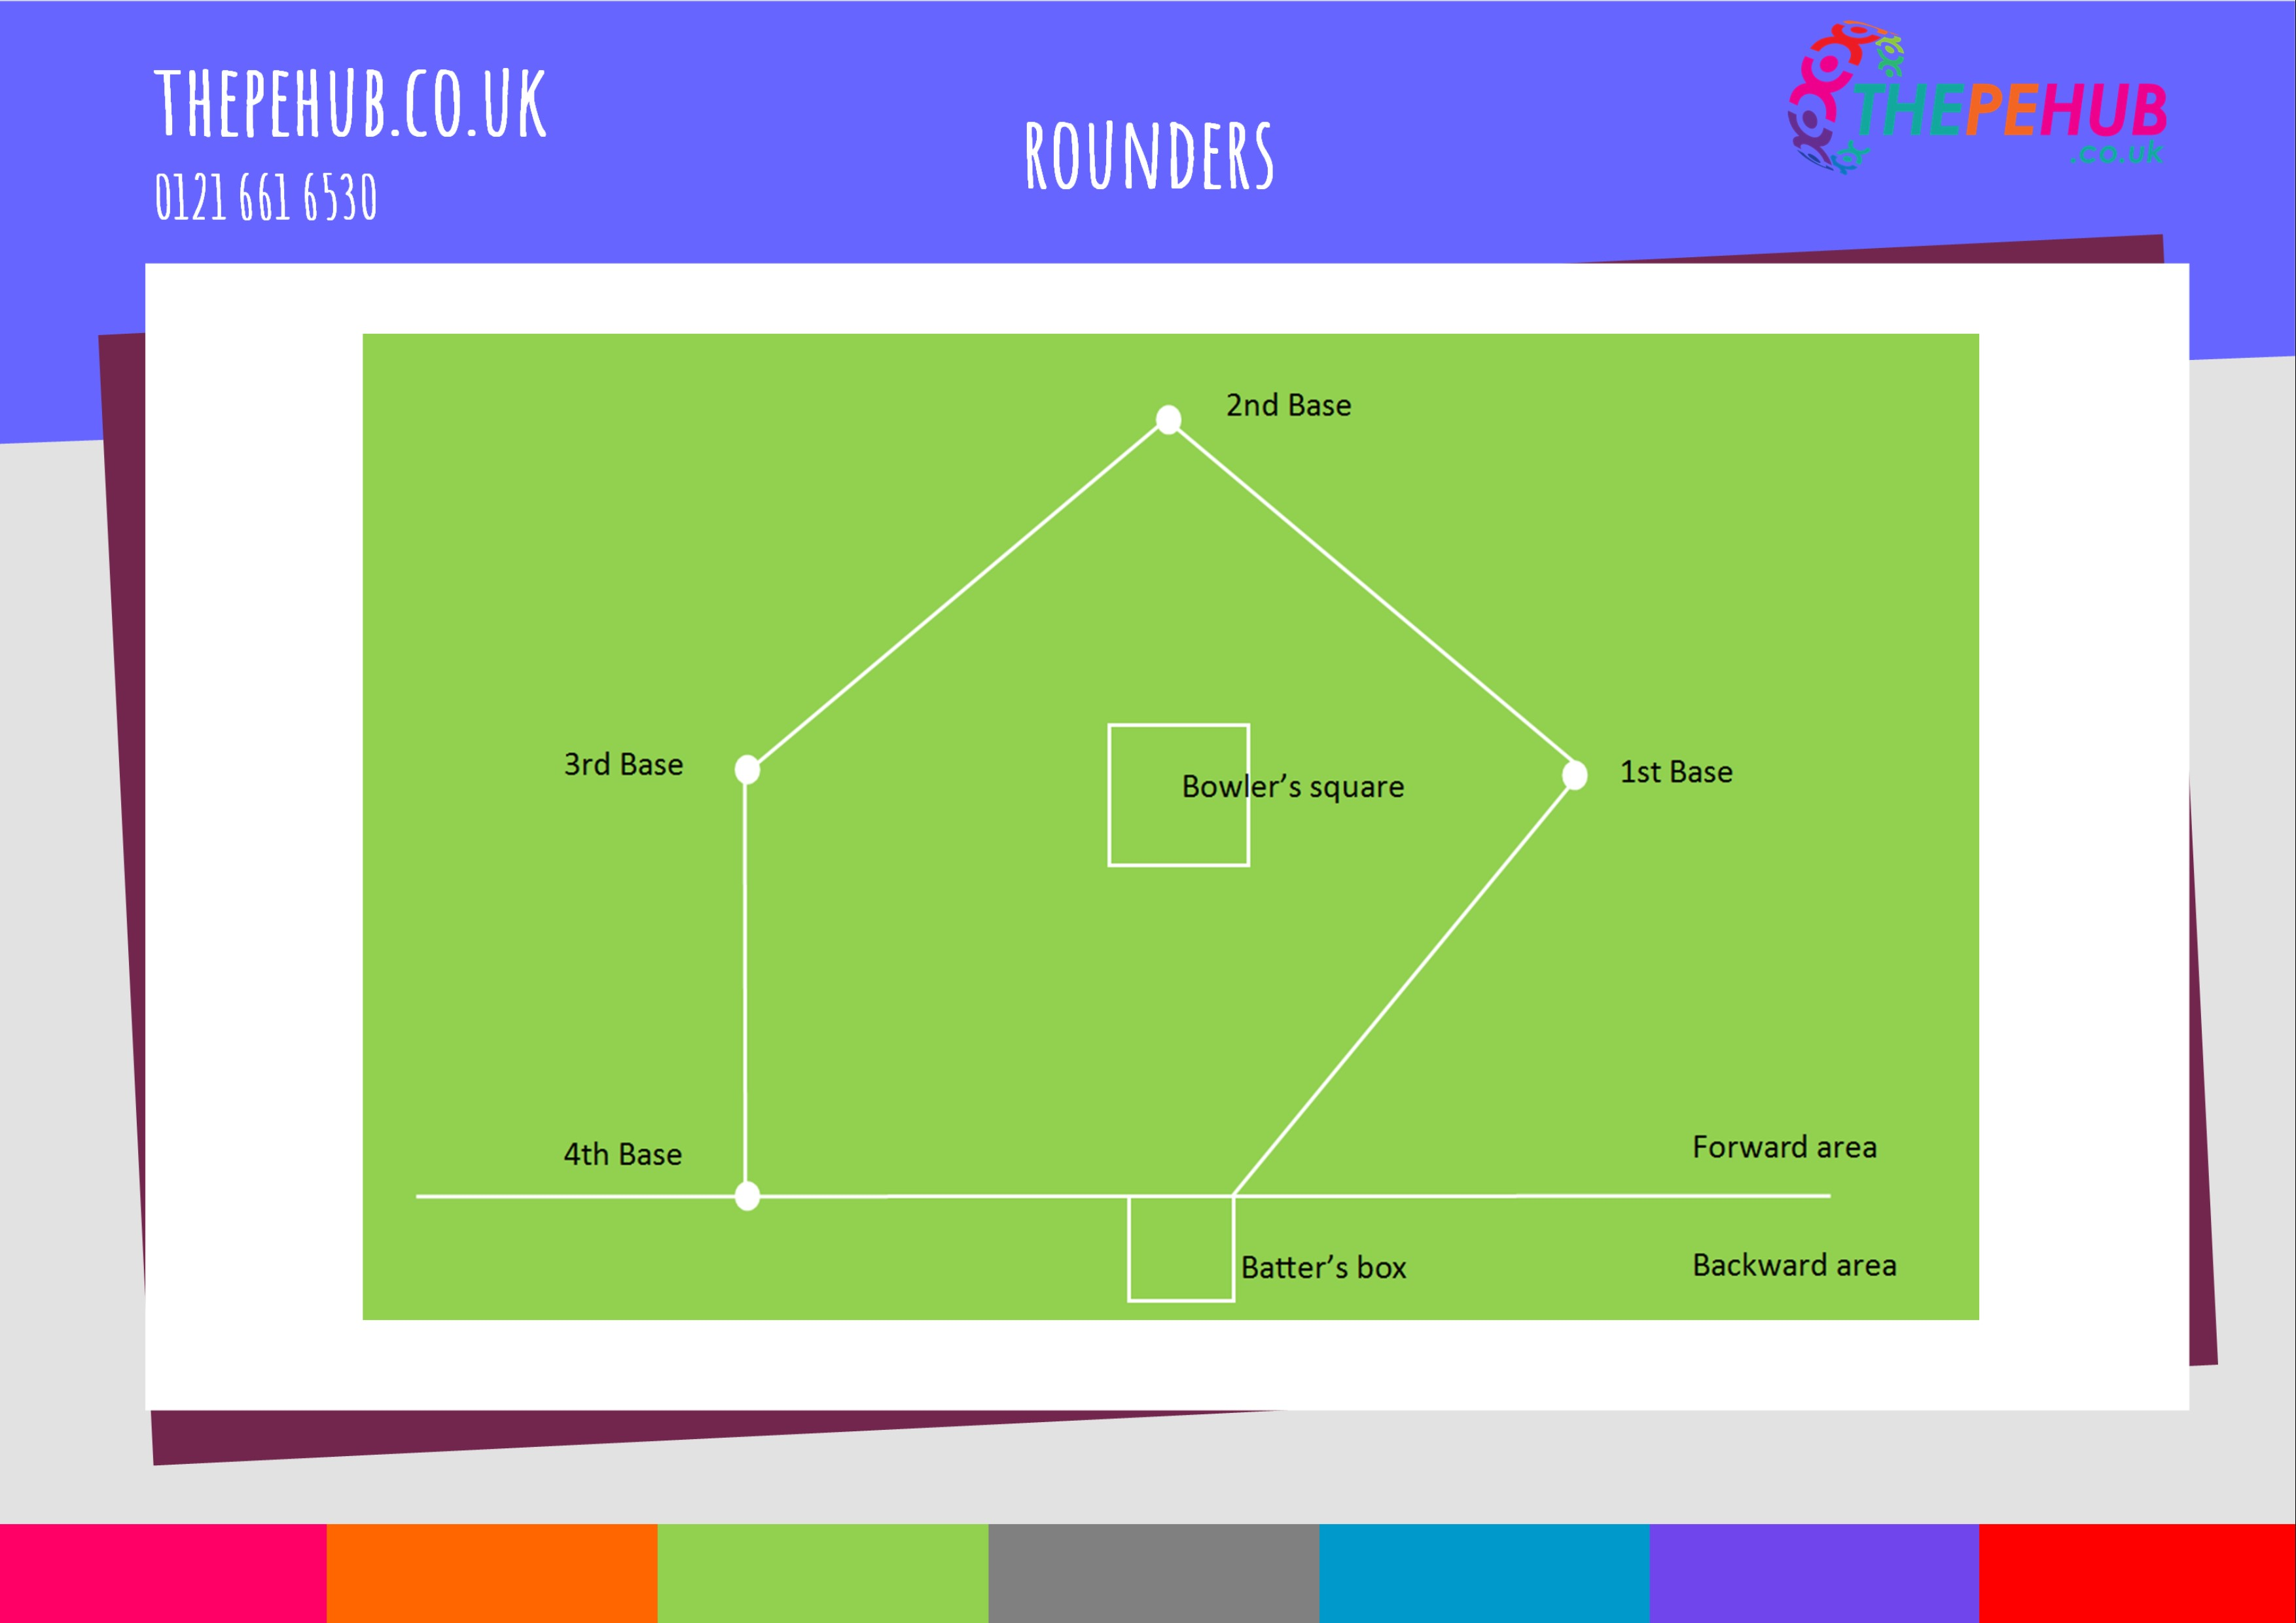 School games rounders pitch layout